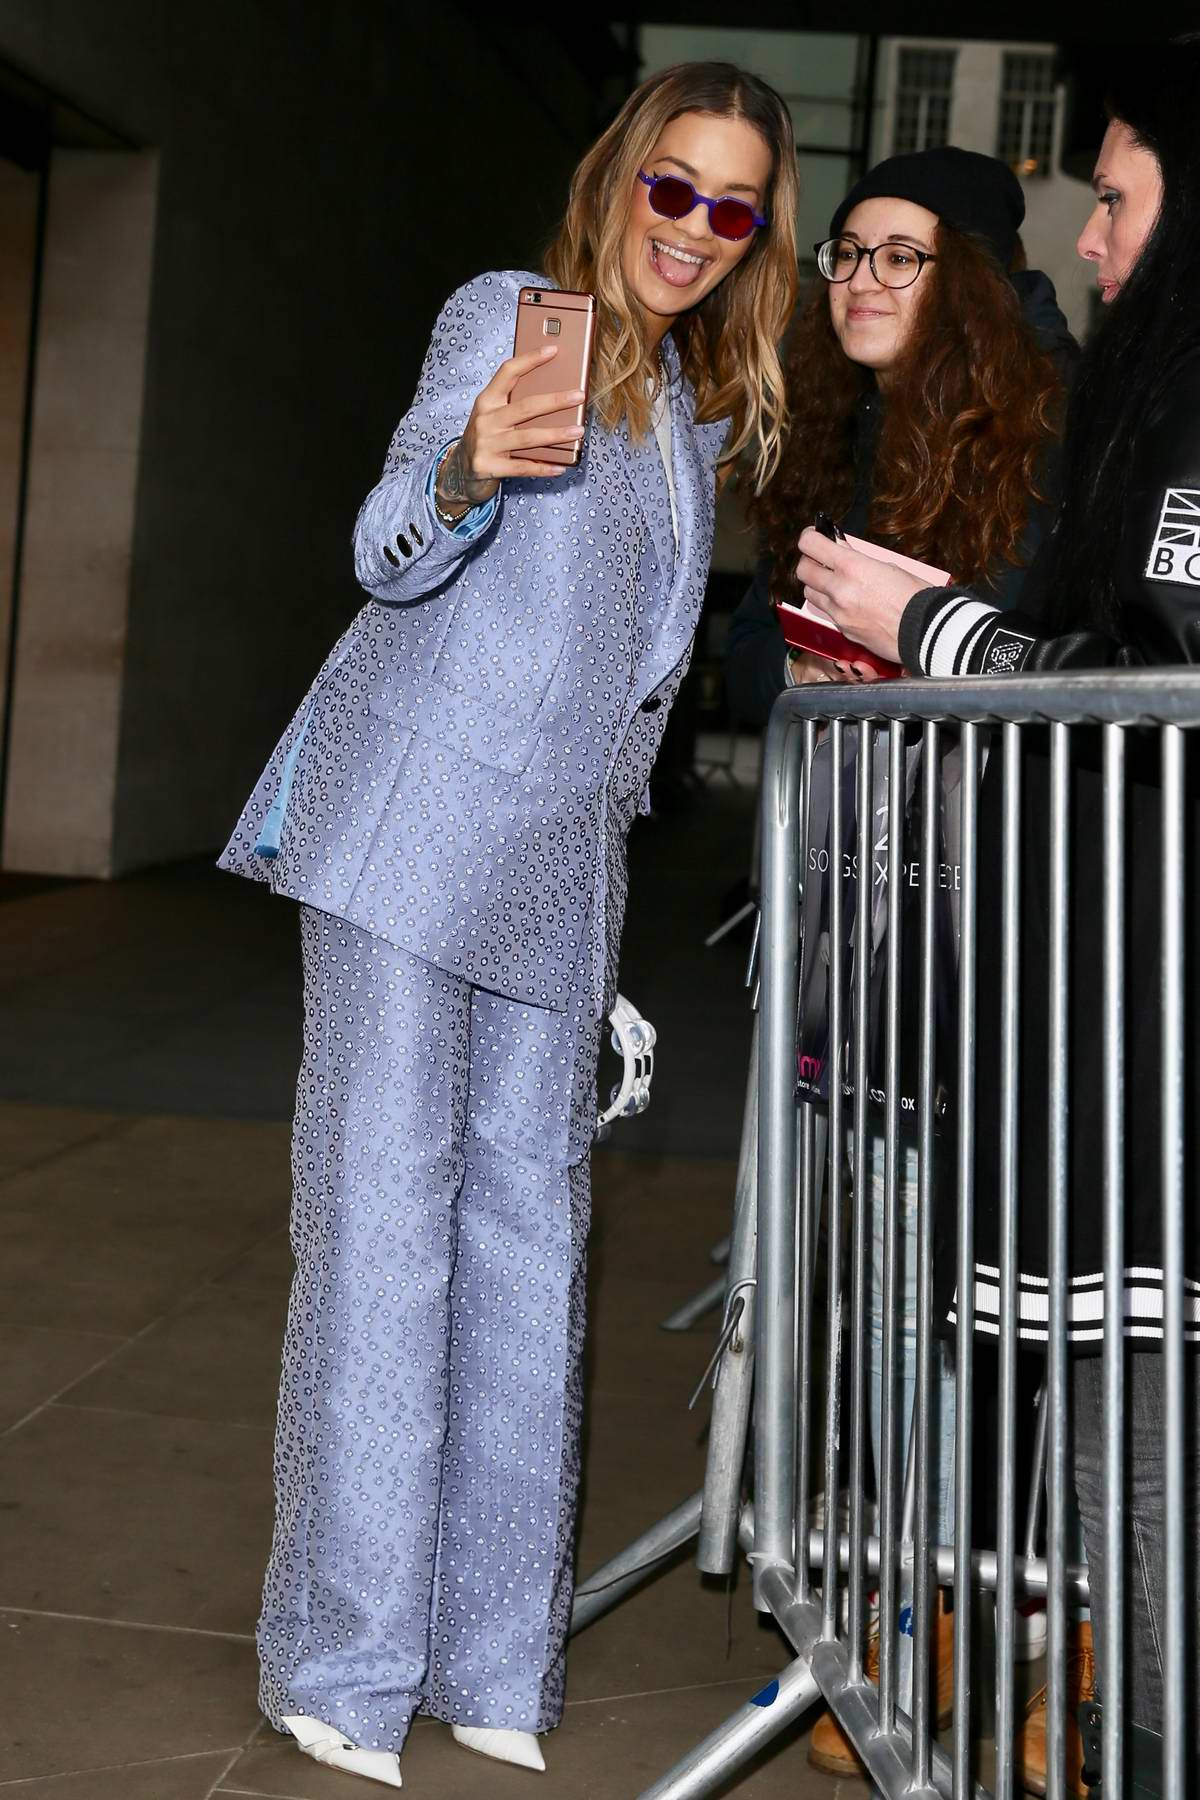 Rita Ora in a blue suit leaving BBC Radio One studios after appearing on the show in London